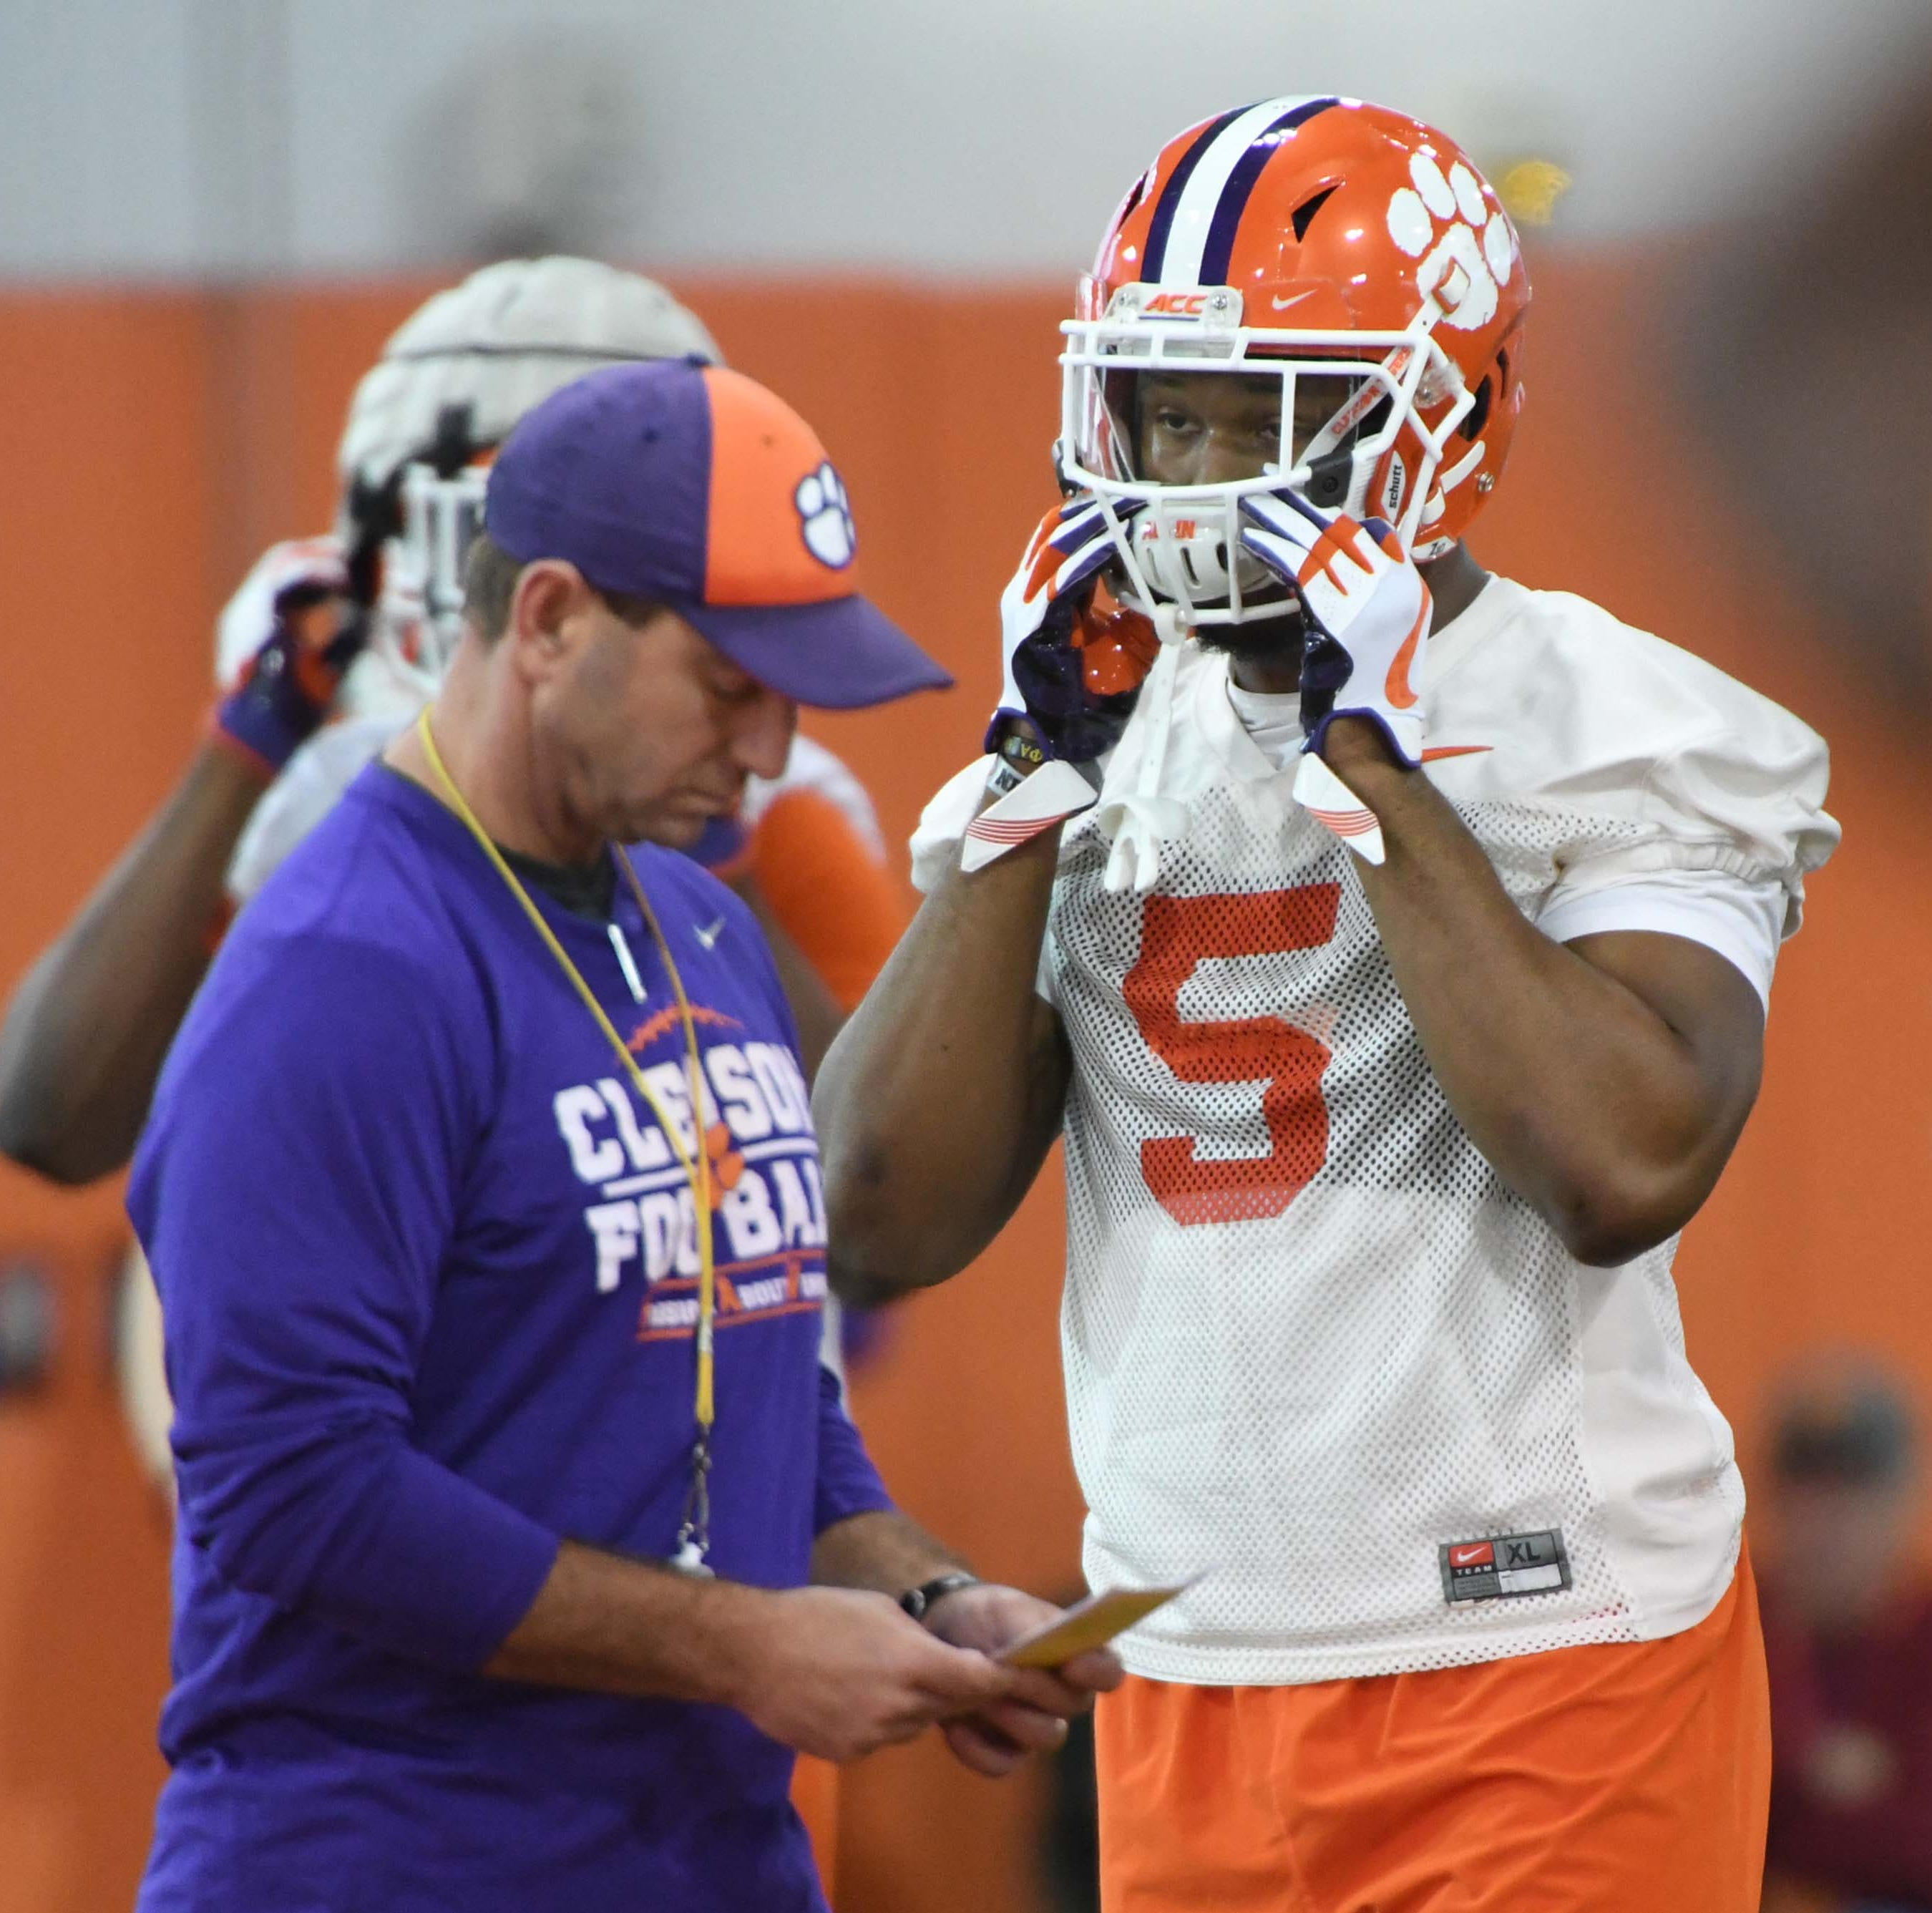 Clemson linebacker Shaq Smith enters NCAA's transfer portal